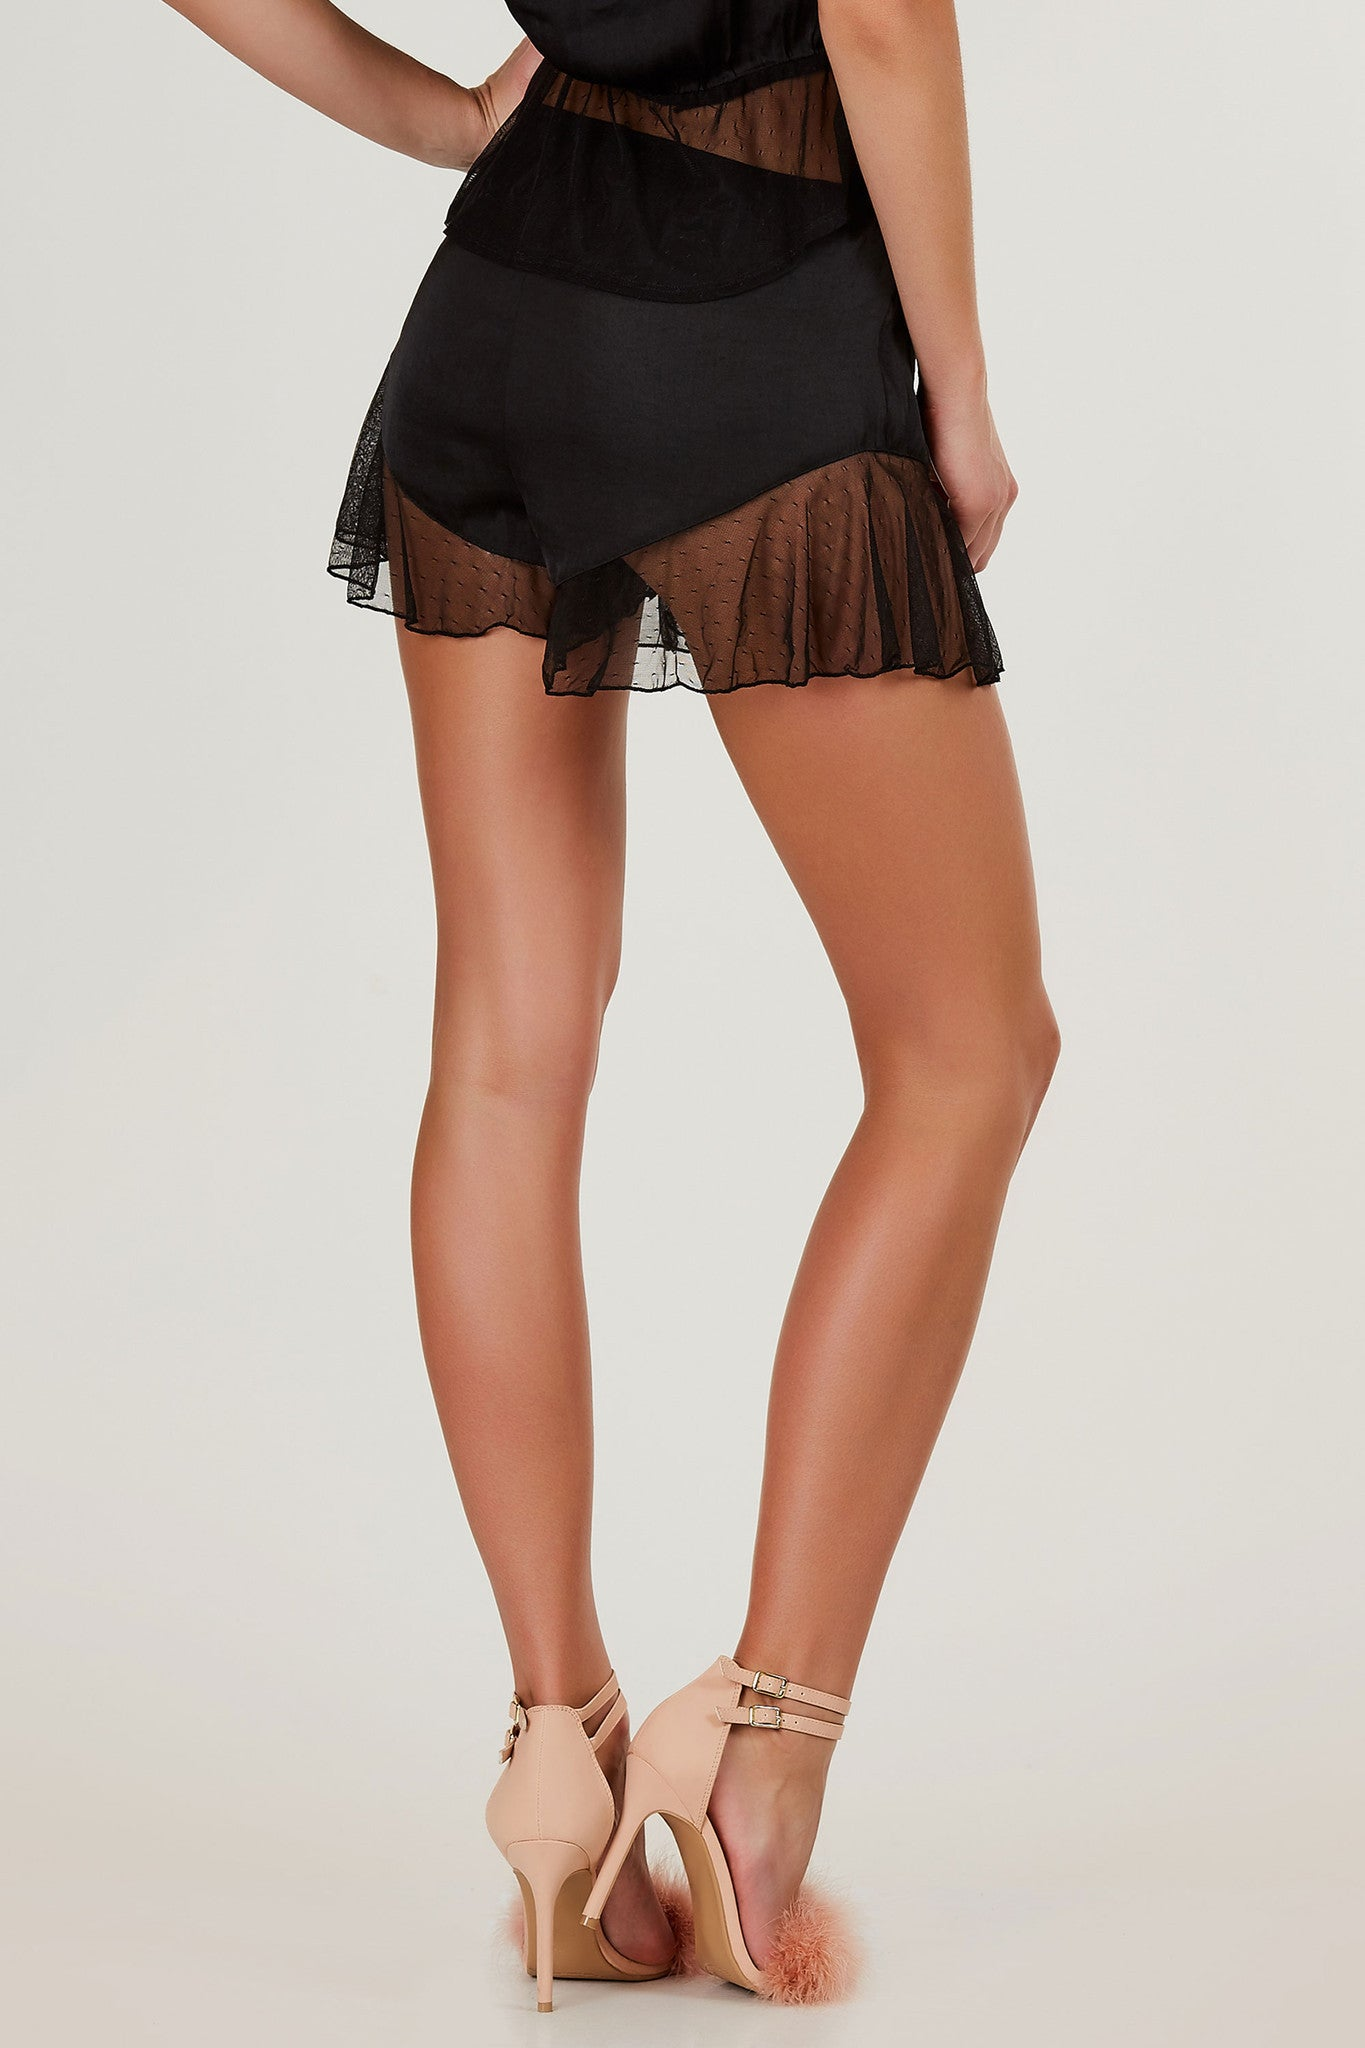 Smooth lightweight slip on shorts with mesh ruffle trim throughout. Elasticized waistband with flowy fit.